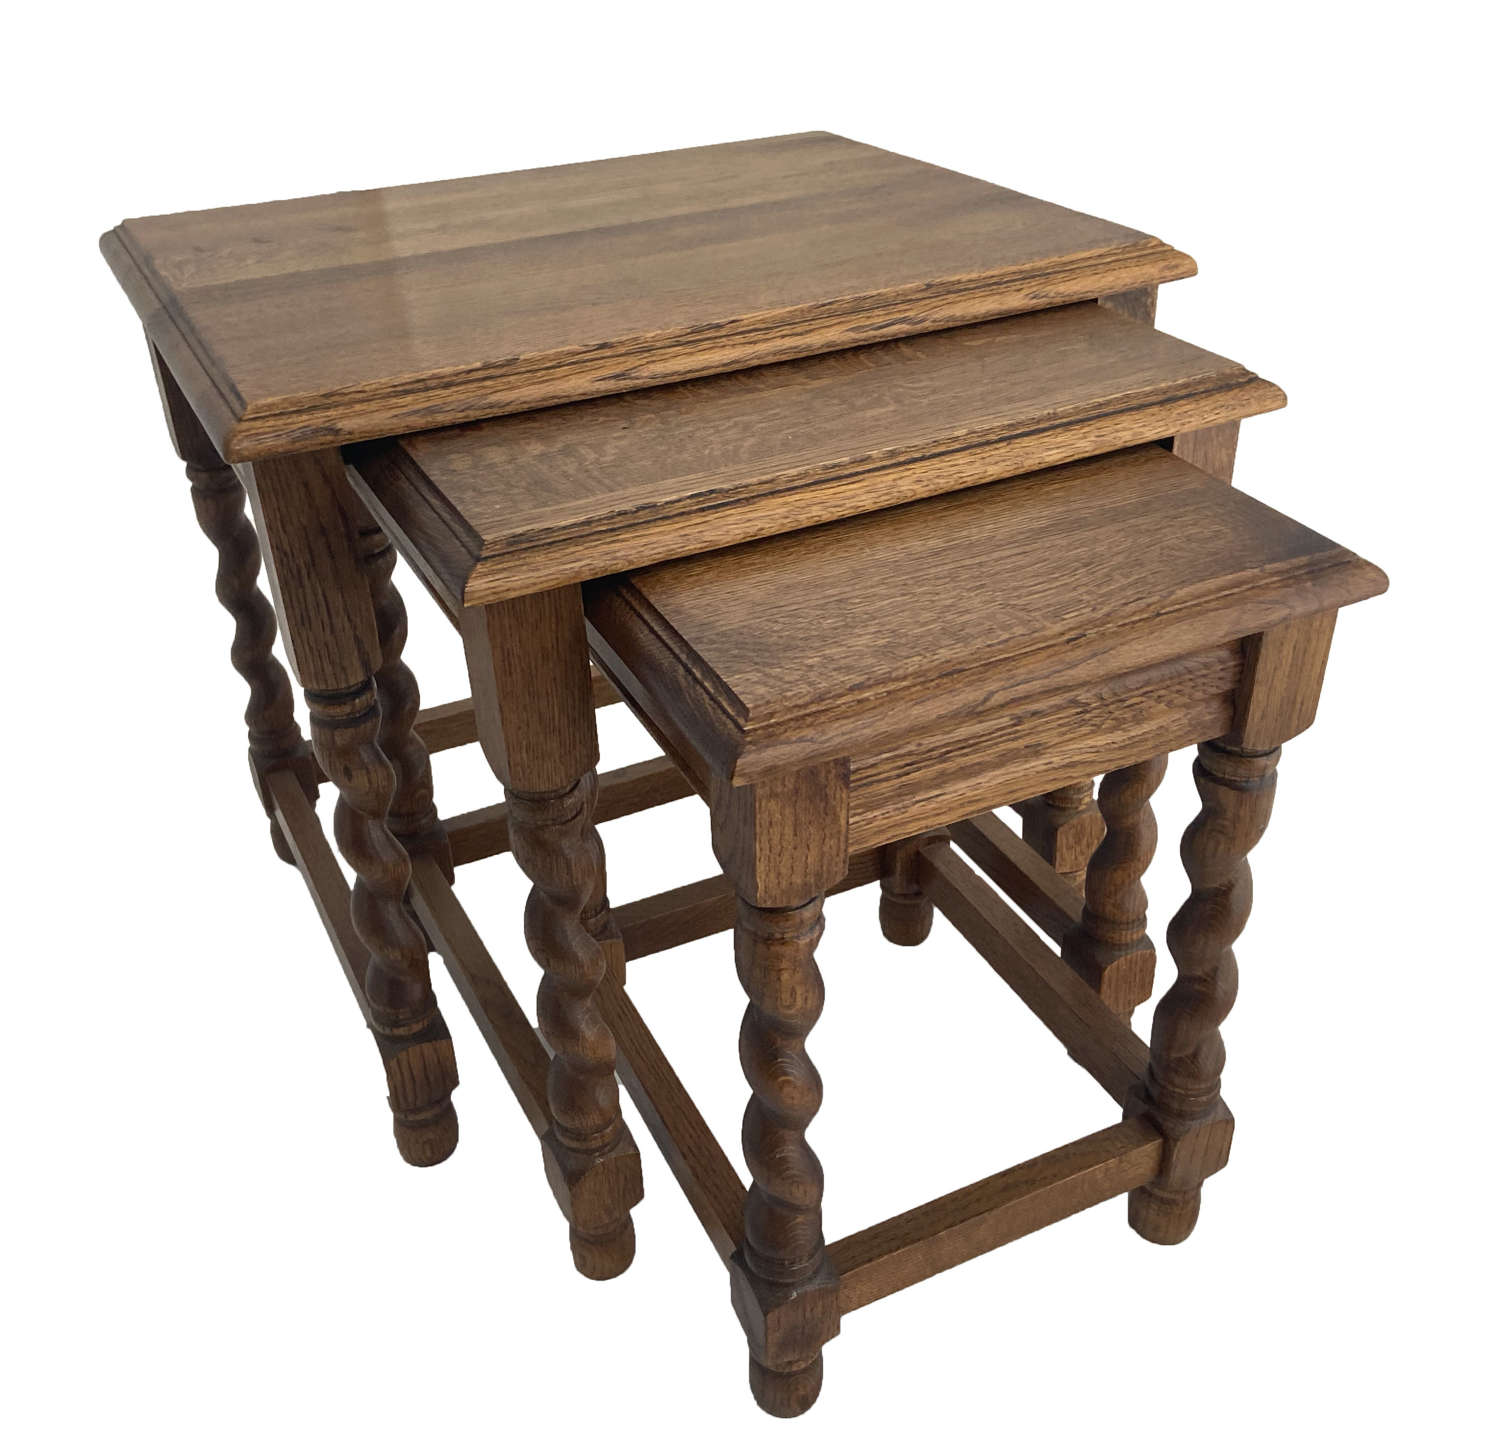 Oak and barleytwist Nest of Tables